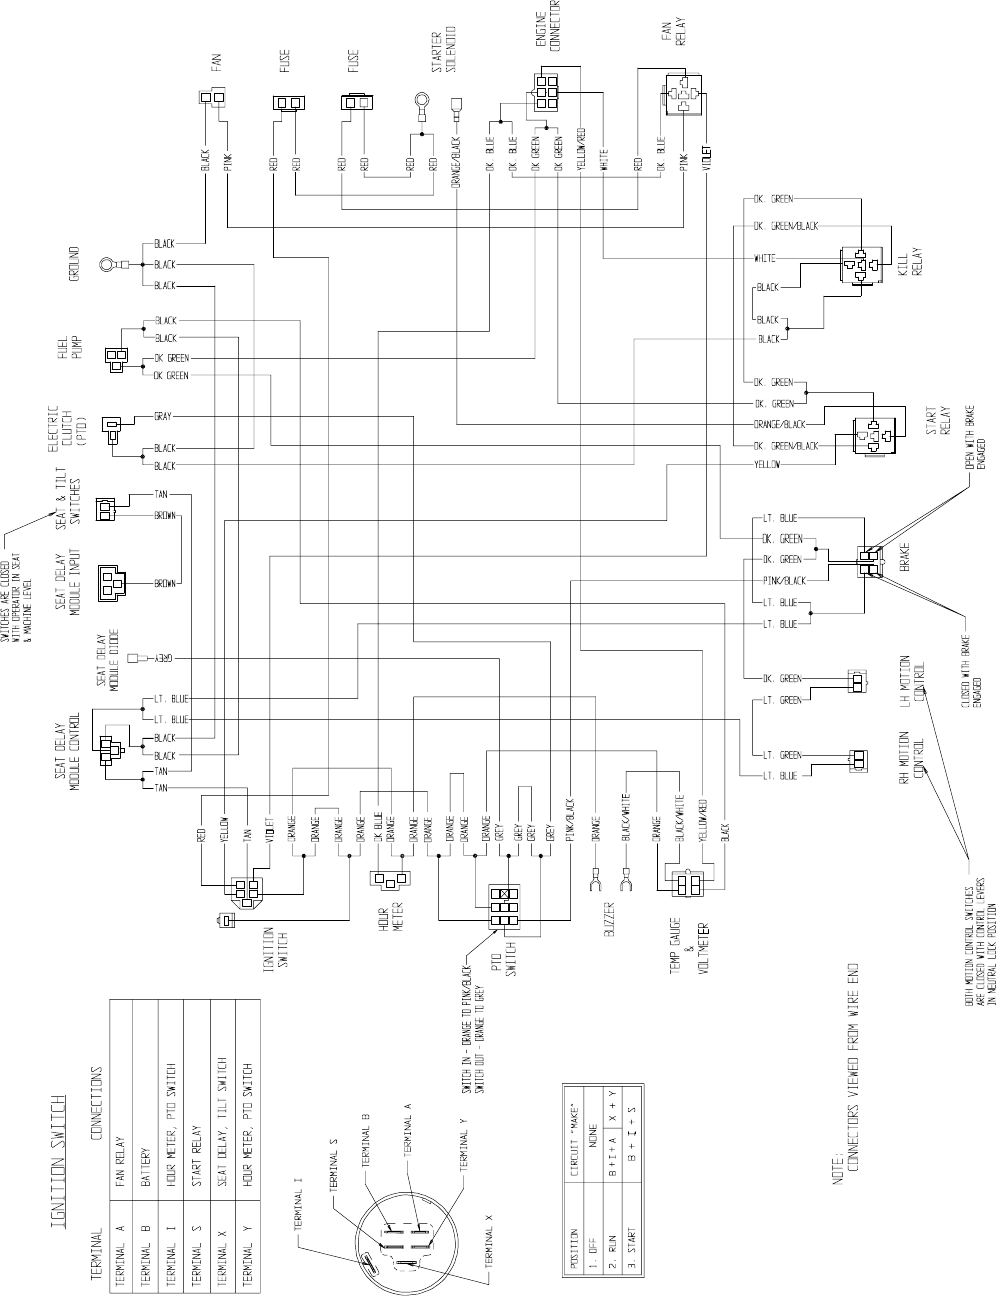 fe0094d5 b49c 4e15 9446 11a96067f628 bg35 hd wallpapers wiring diagram for exmark lazer z 3dhdhddesignf tk  at reclaimingppi.co